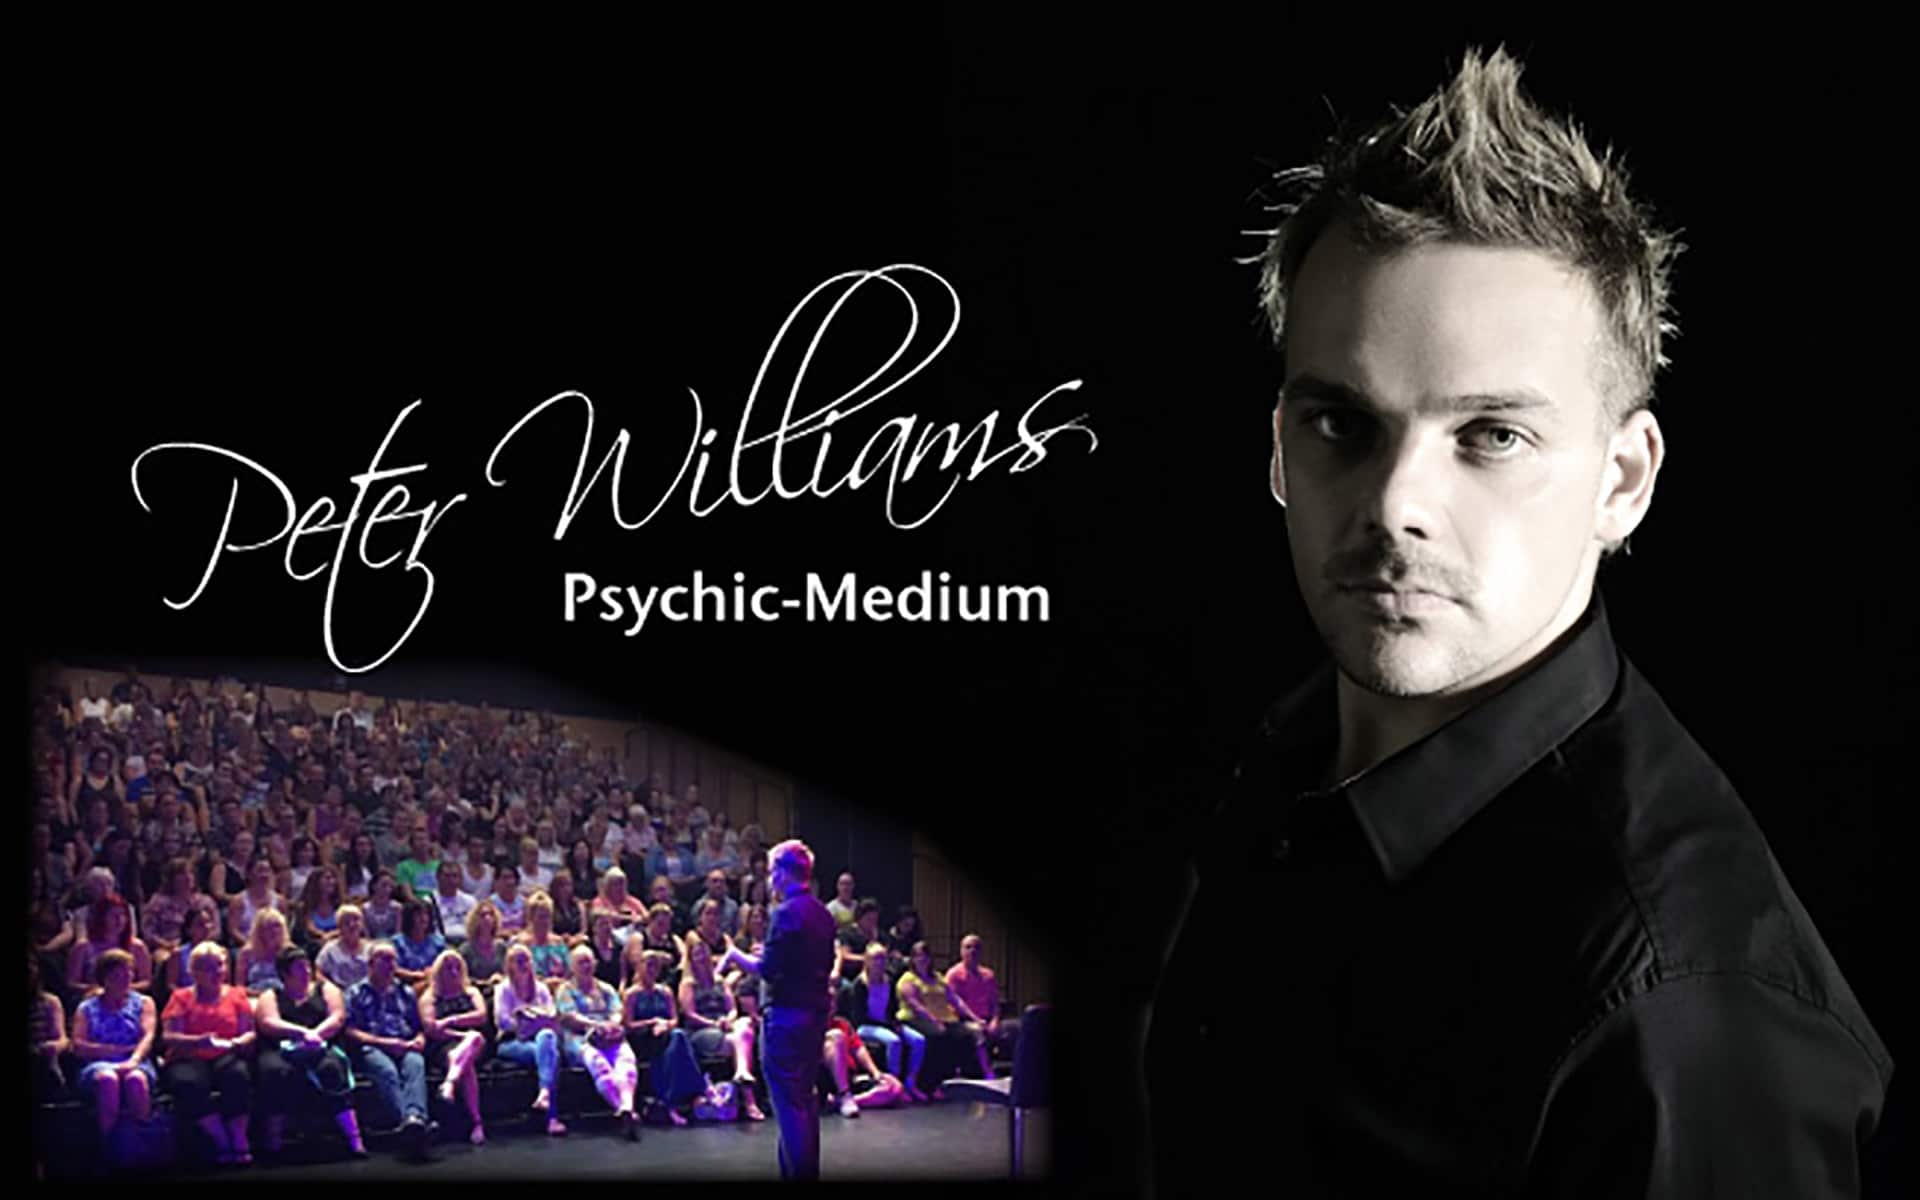 Photo of the Peter Williams, a psychic-medium, for his Studio 188 Ipswich Performance